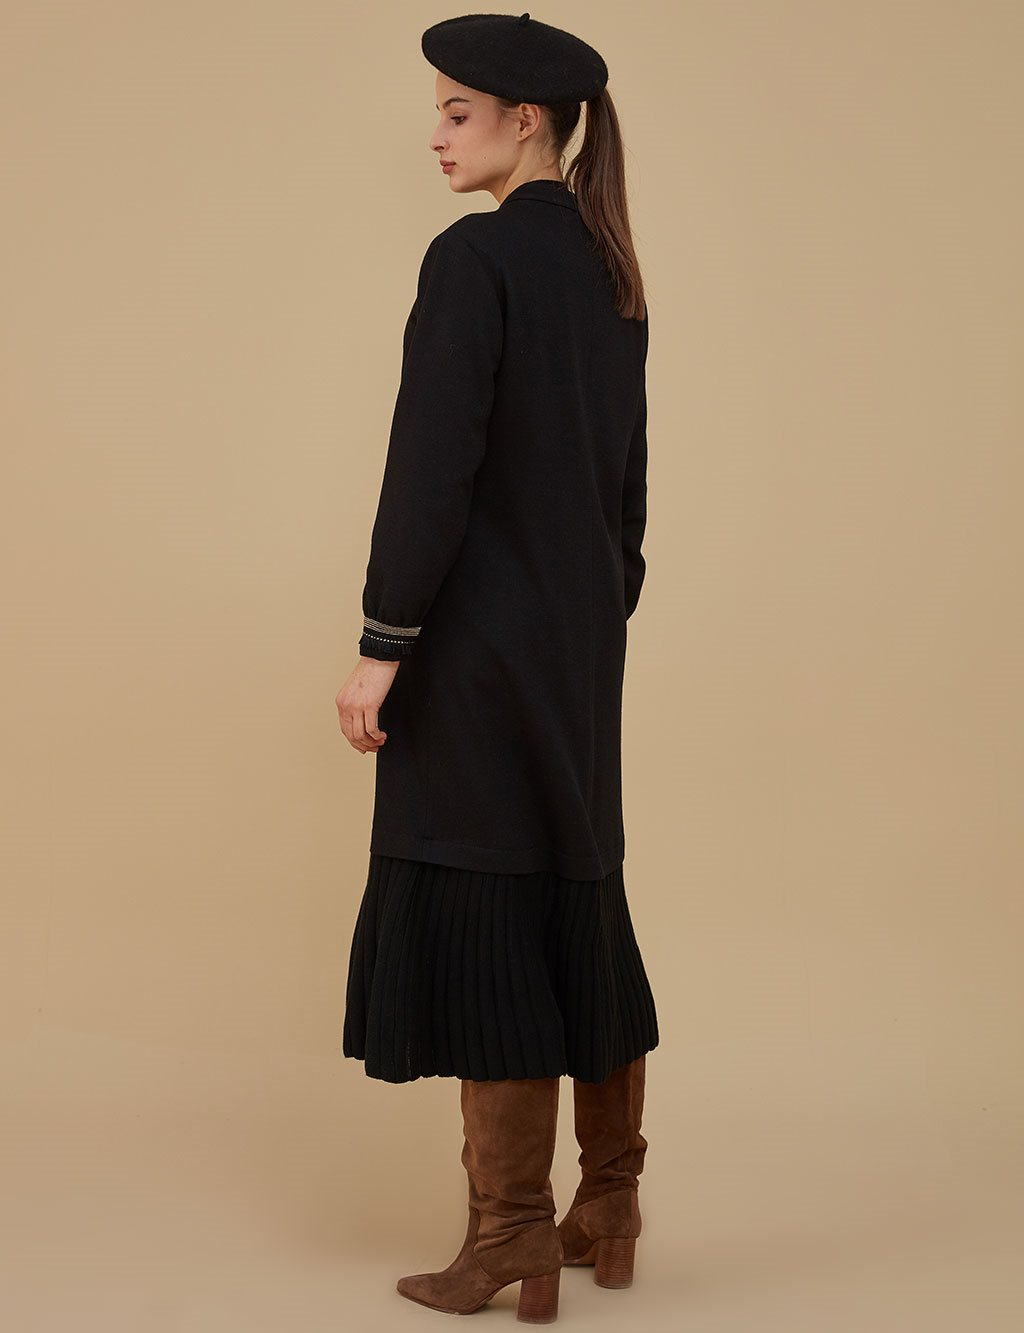 Sleeve Detailed Coat A9 25091 Black